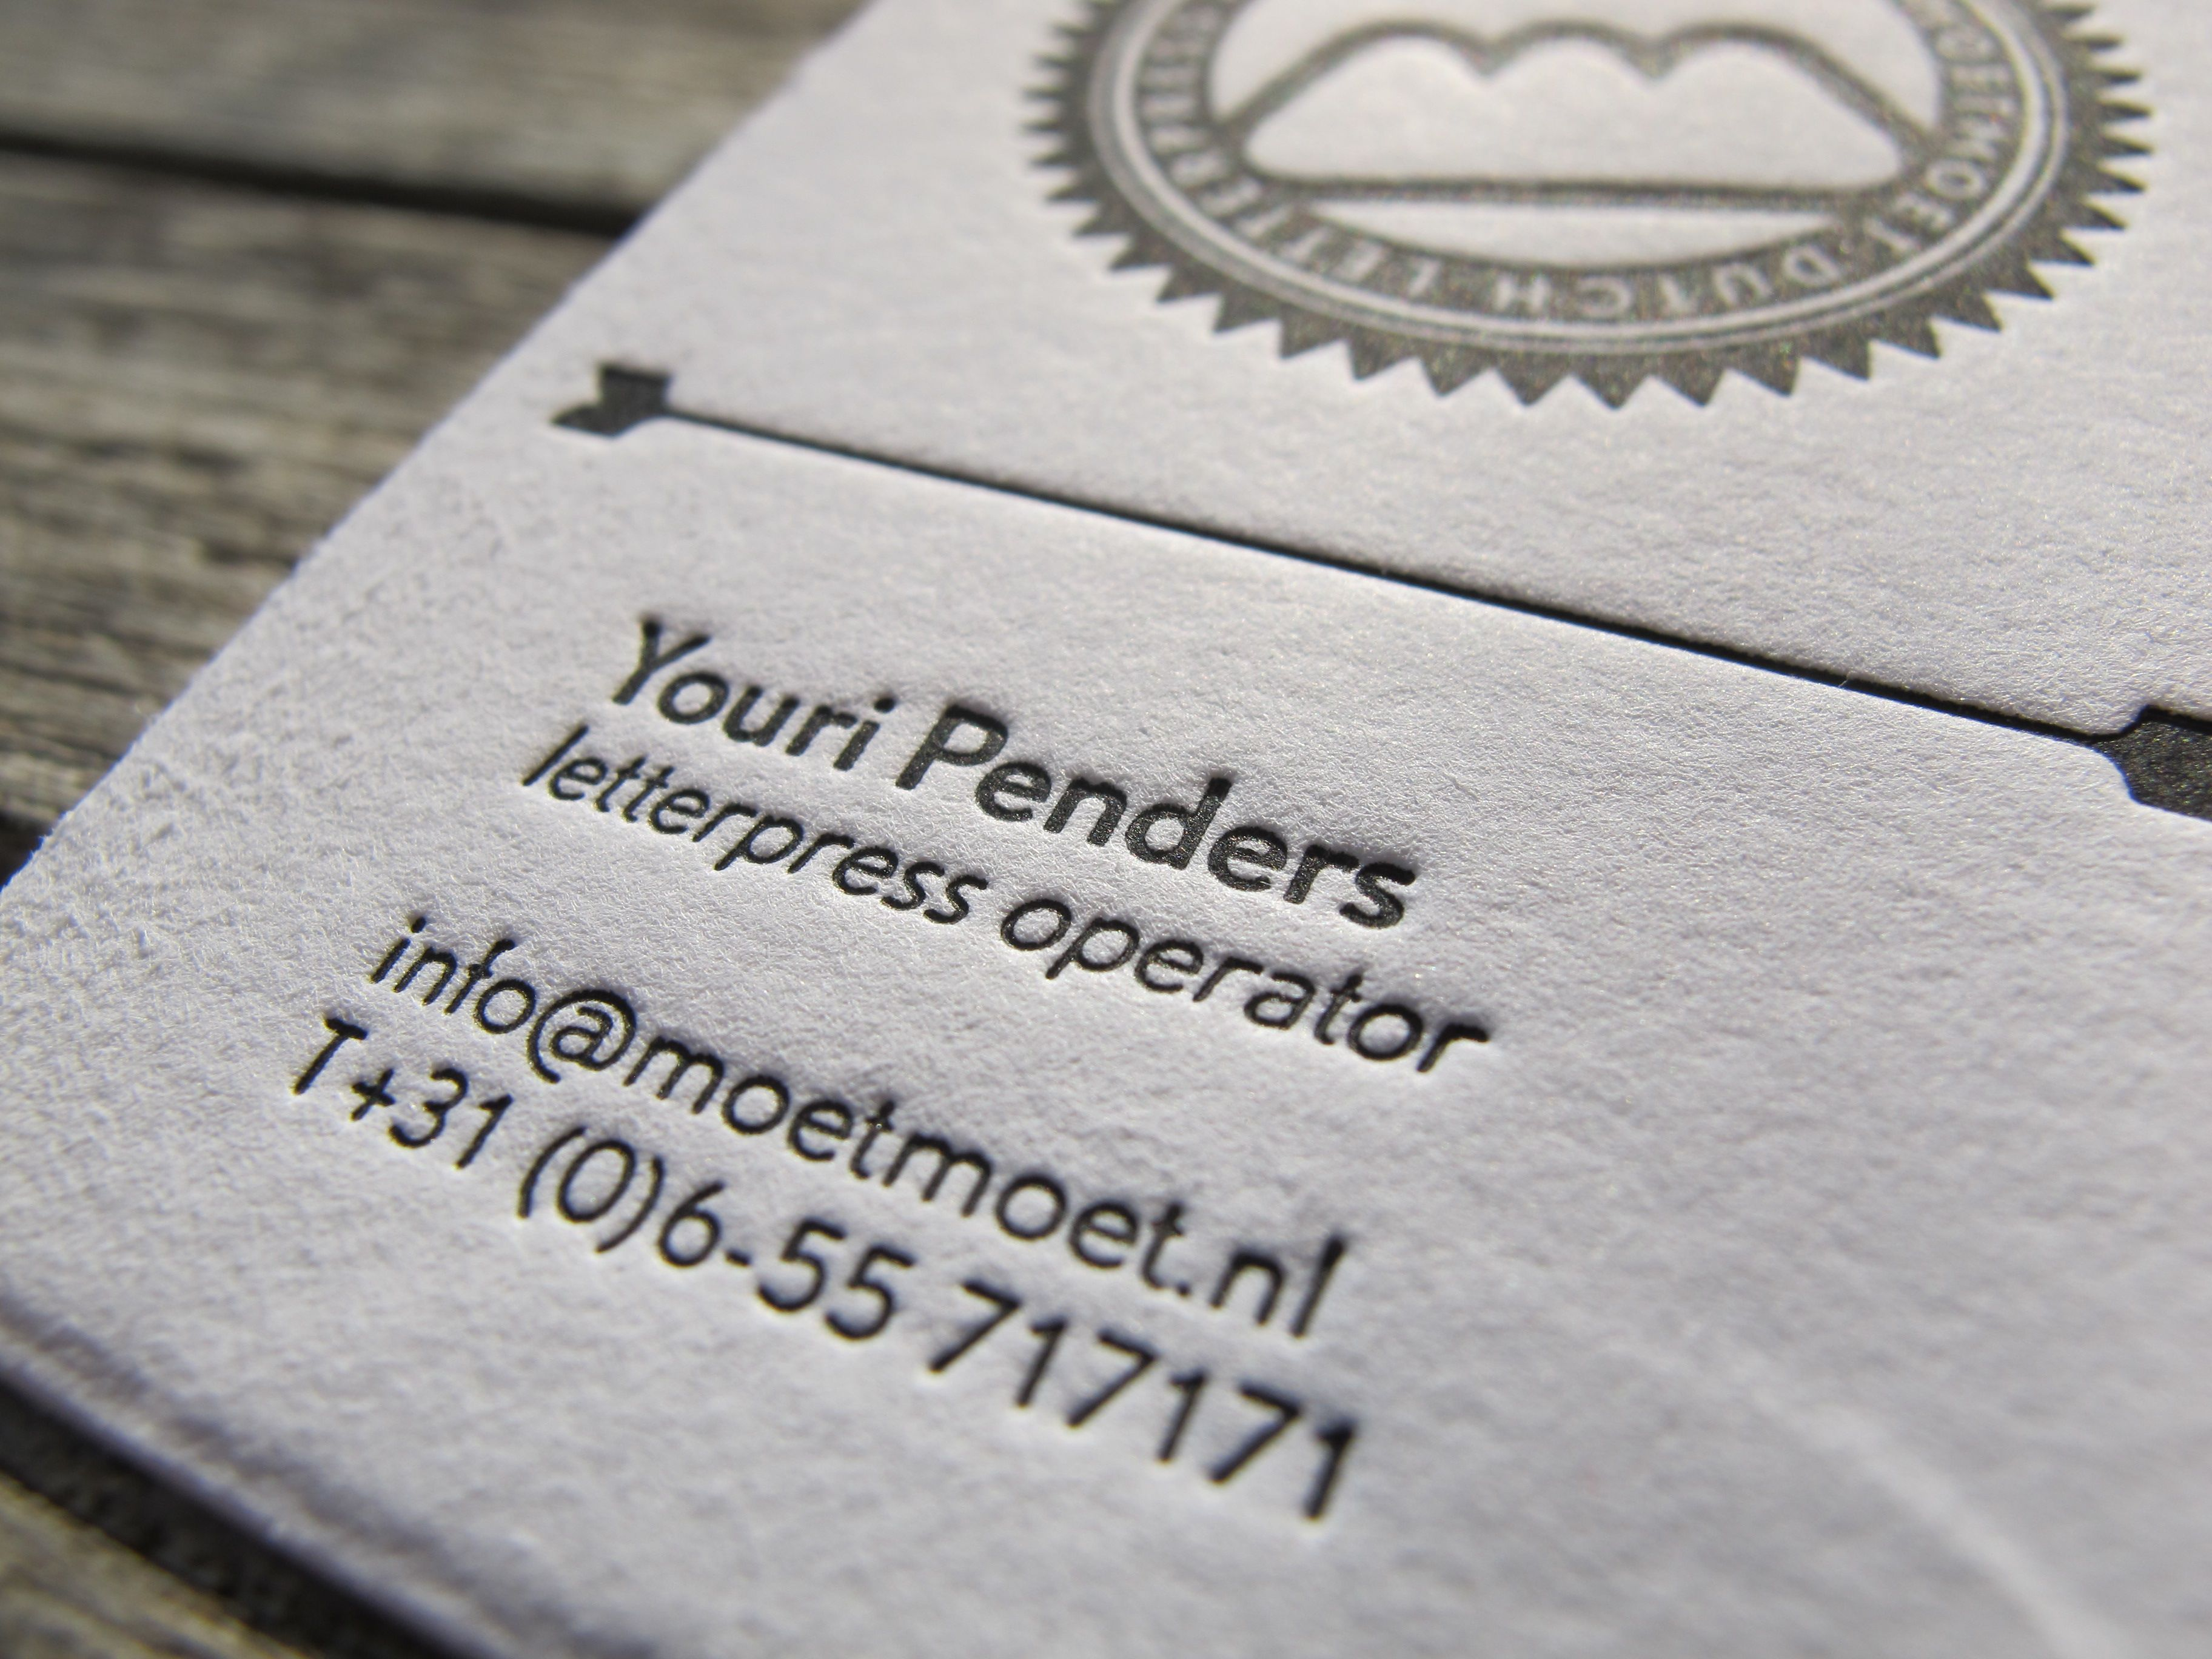 My own business card for www.moetmoet.nl